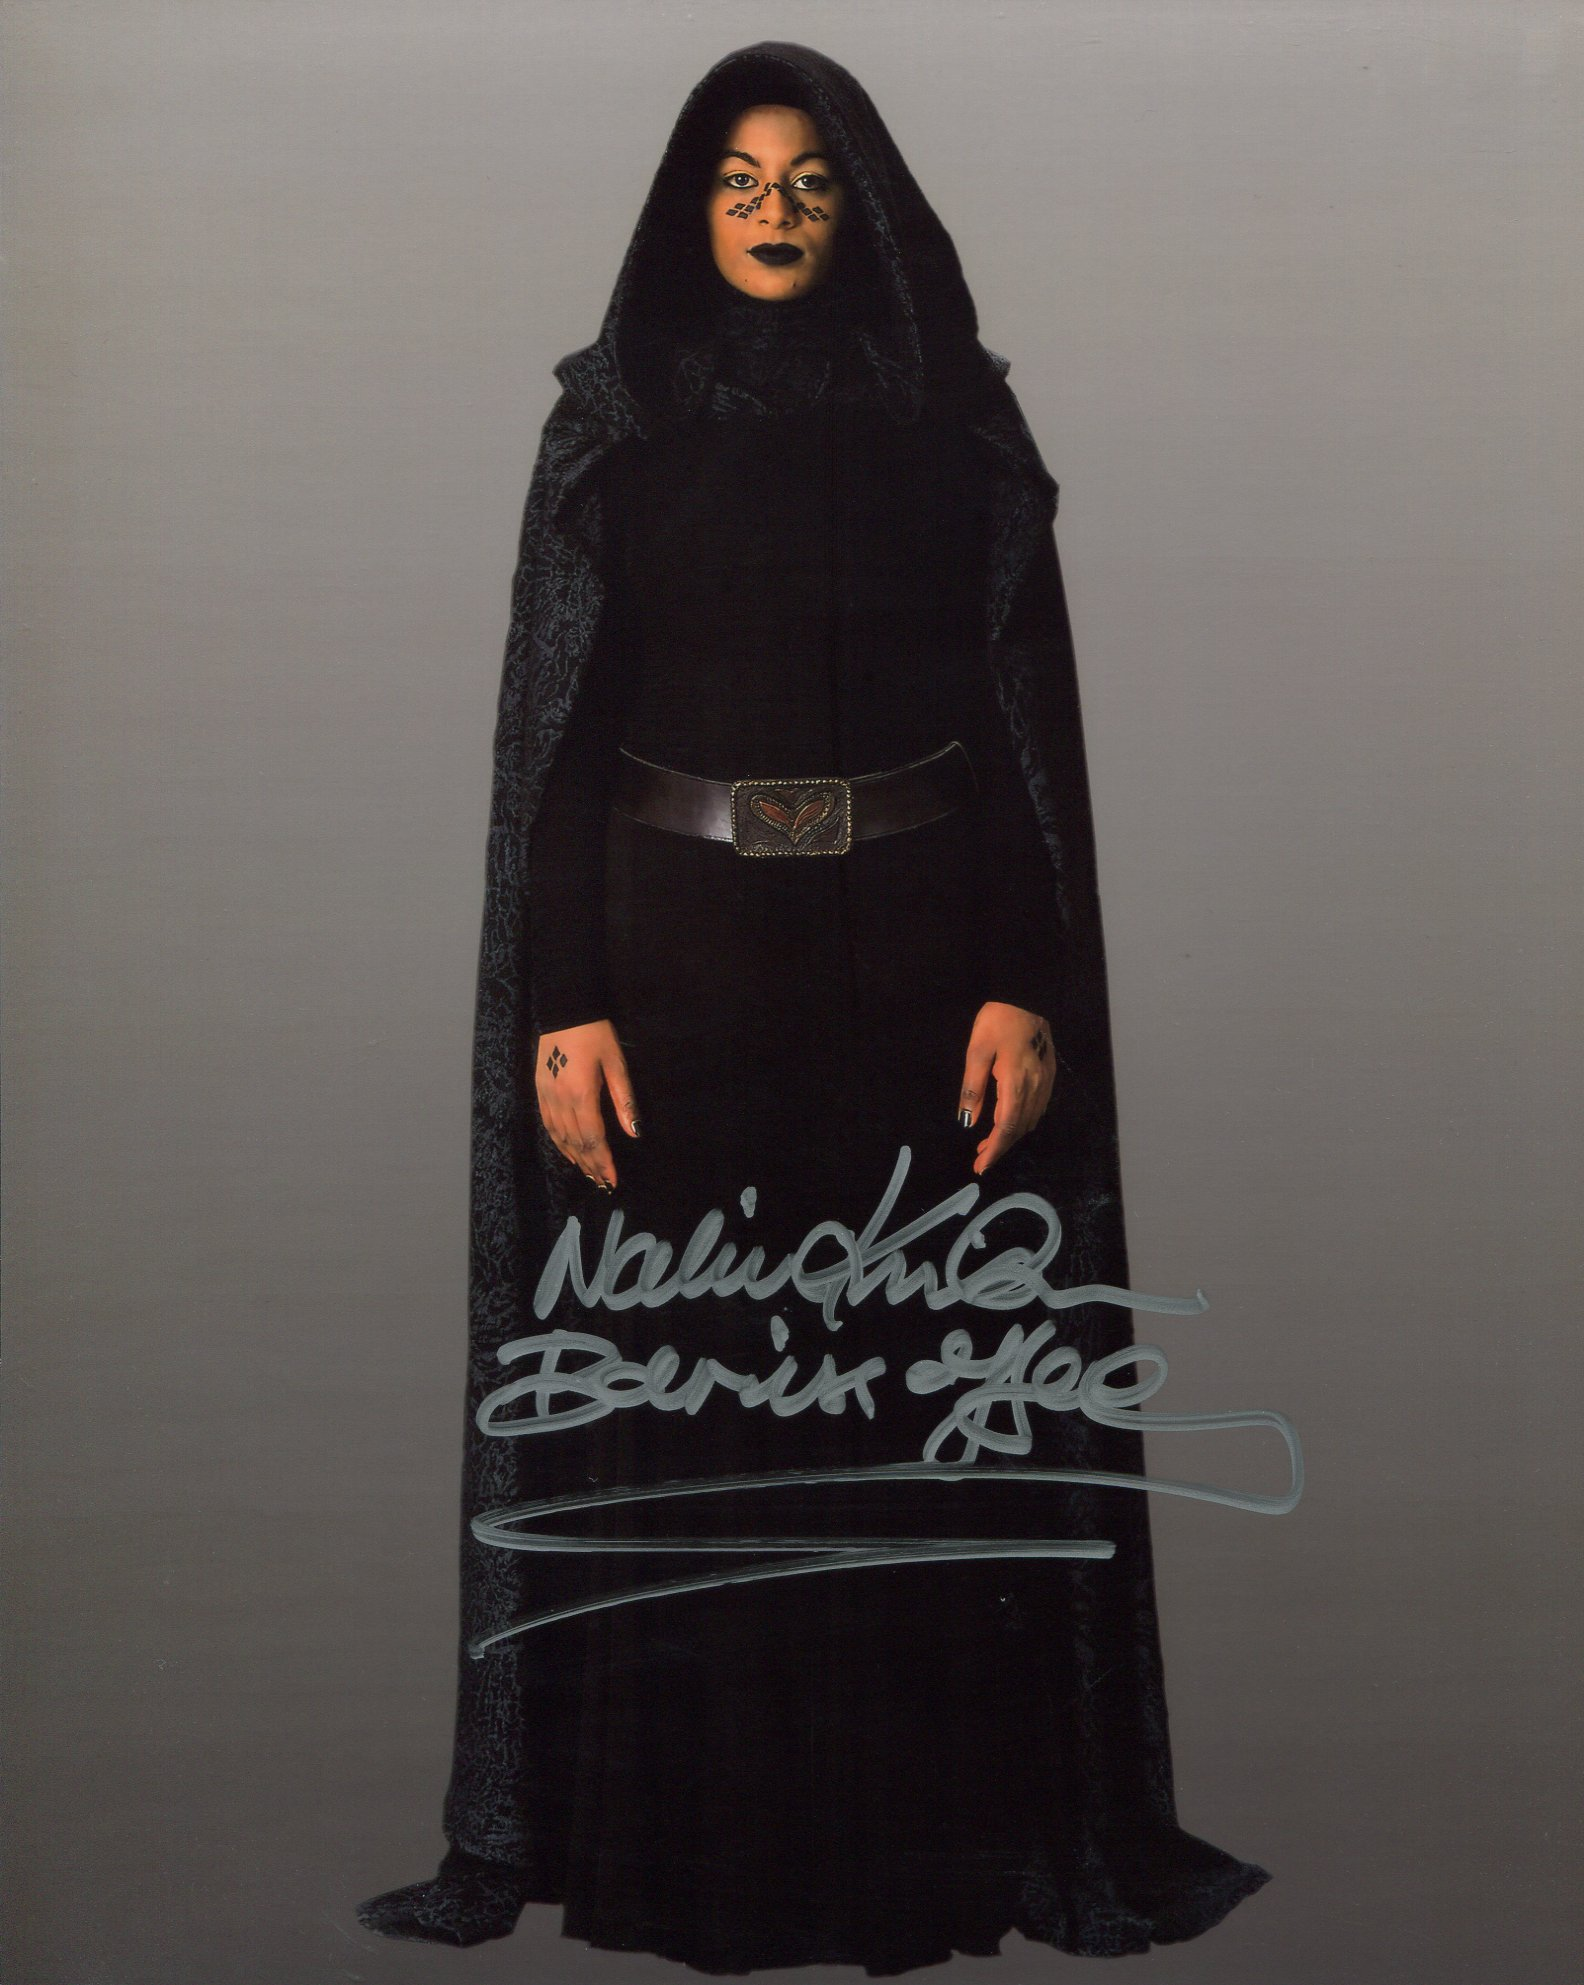 Star Wars 8x10 photo signed by Nalini Krishan as Barris Offee in Star Wars Episode II Attack of